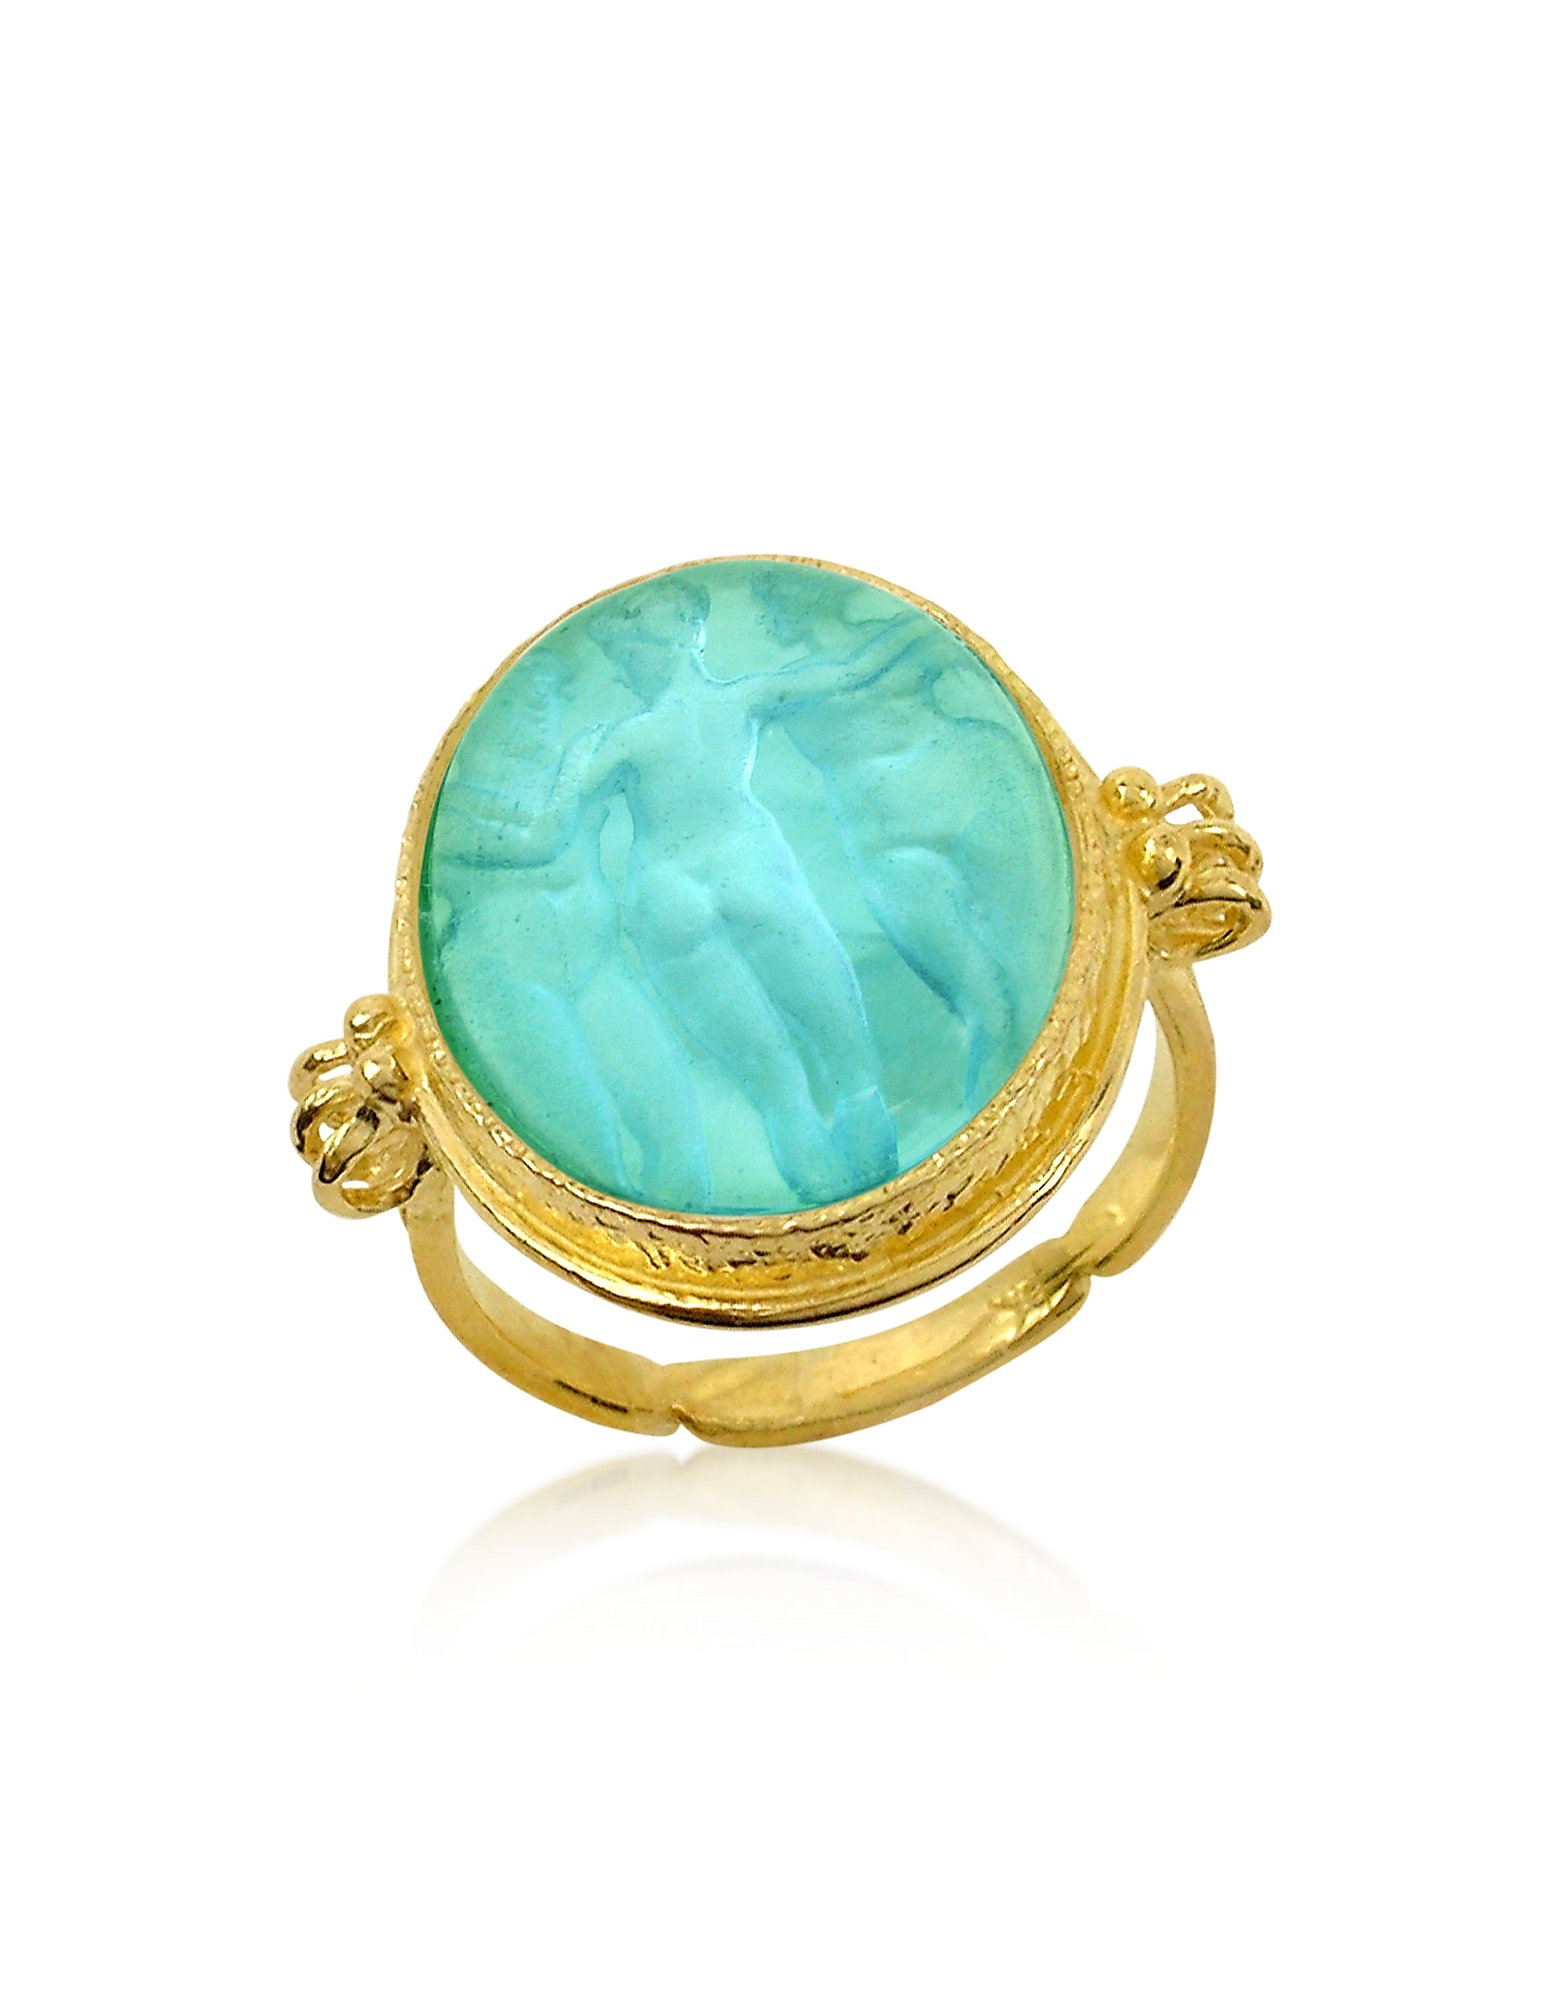 Tagliamonte Cameo, Three Graces - 18K Gold Turquoise Vitreous Paste Cameo Ring